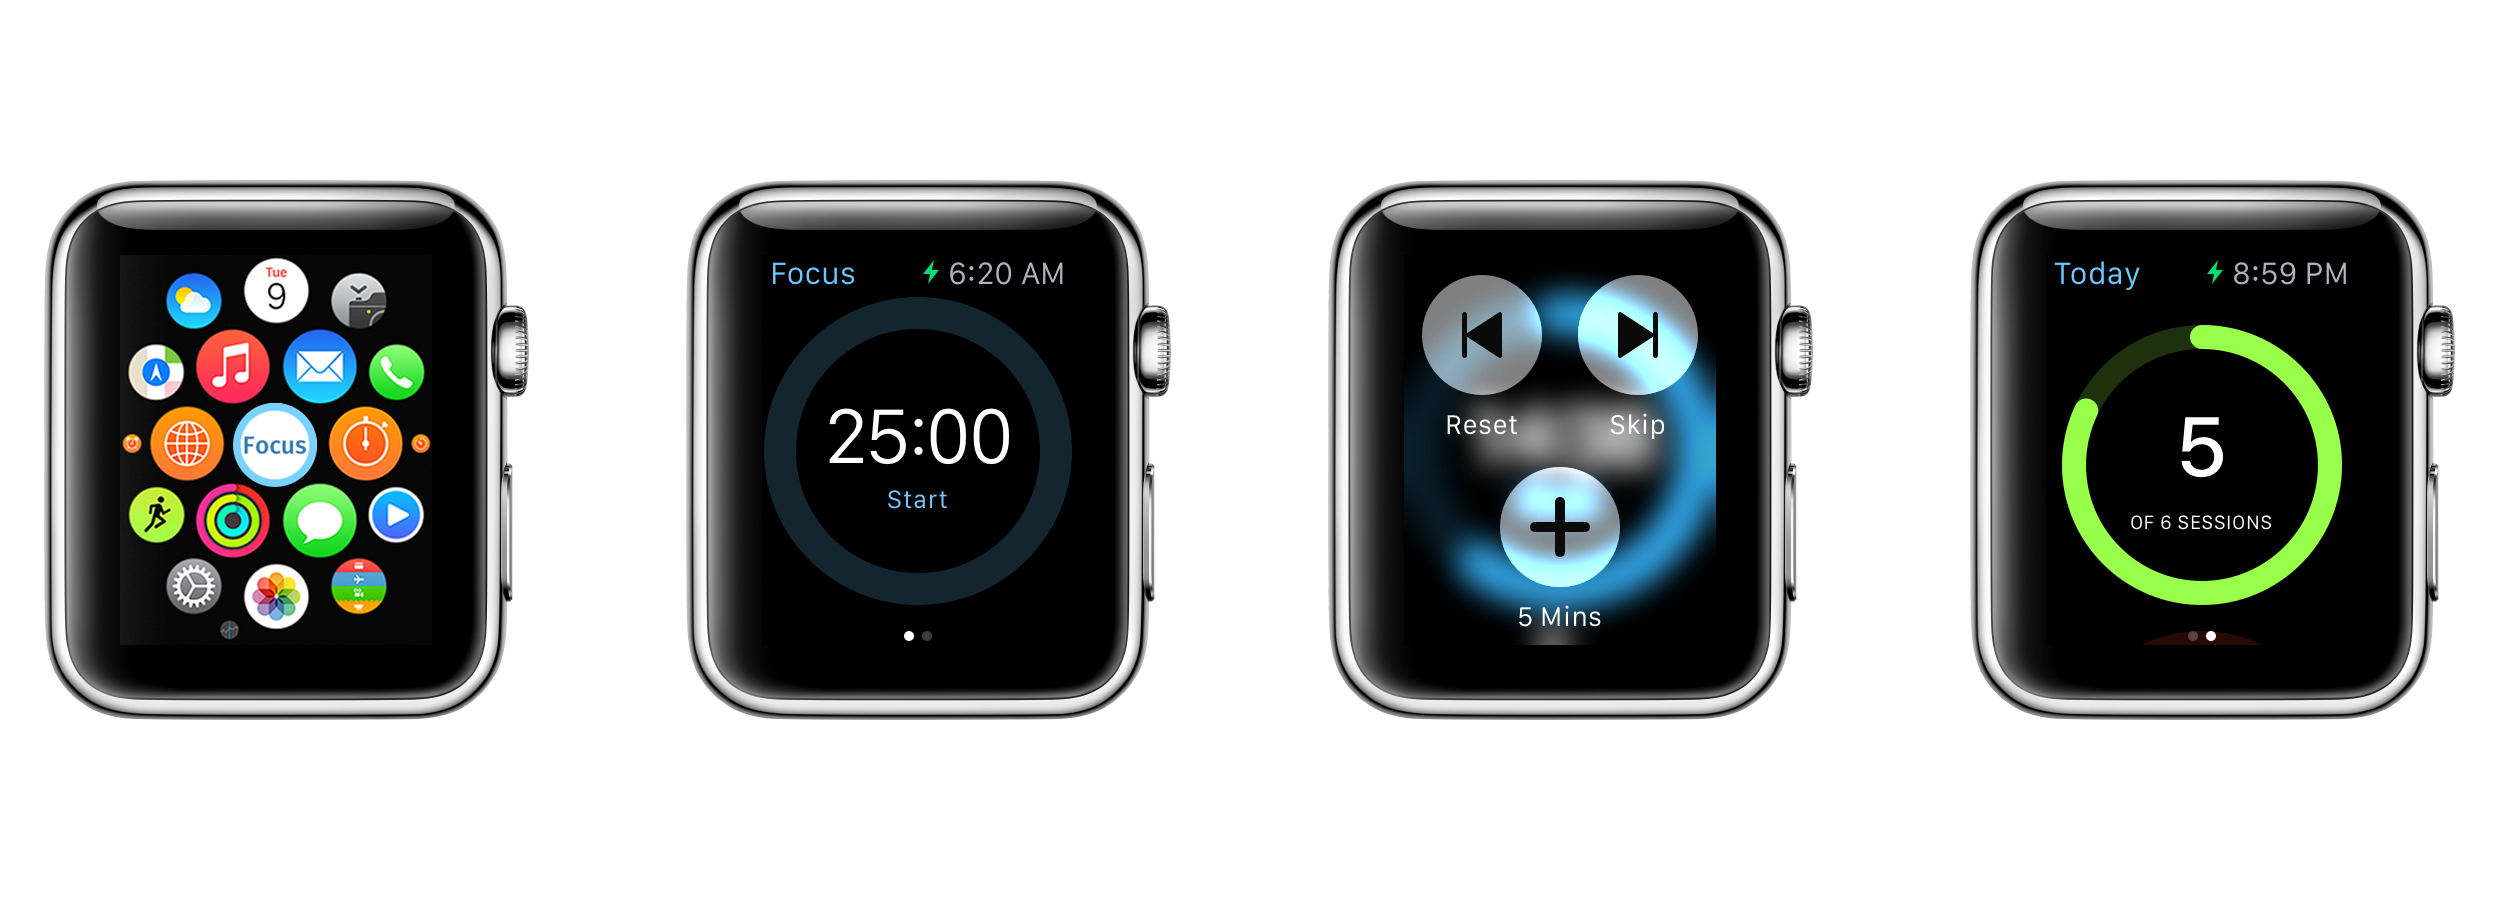 Focus-app-watch-mix